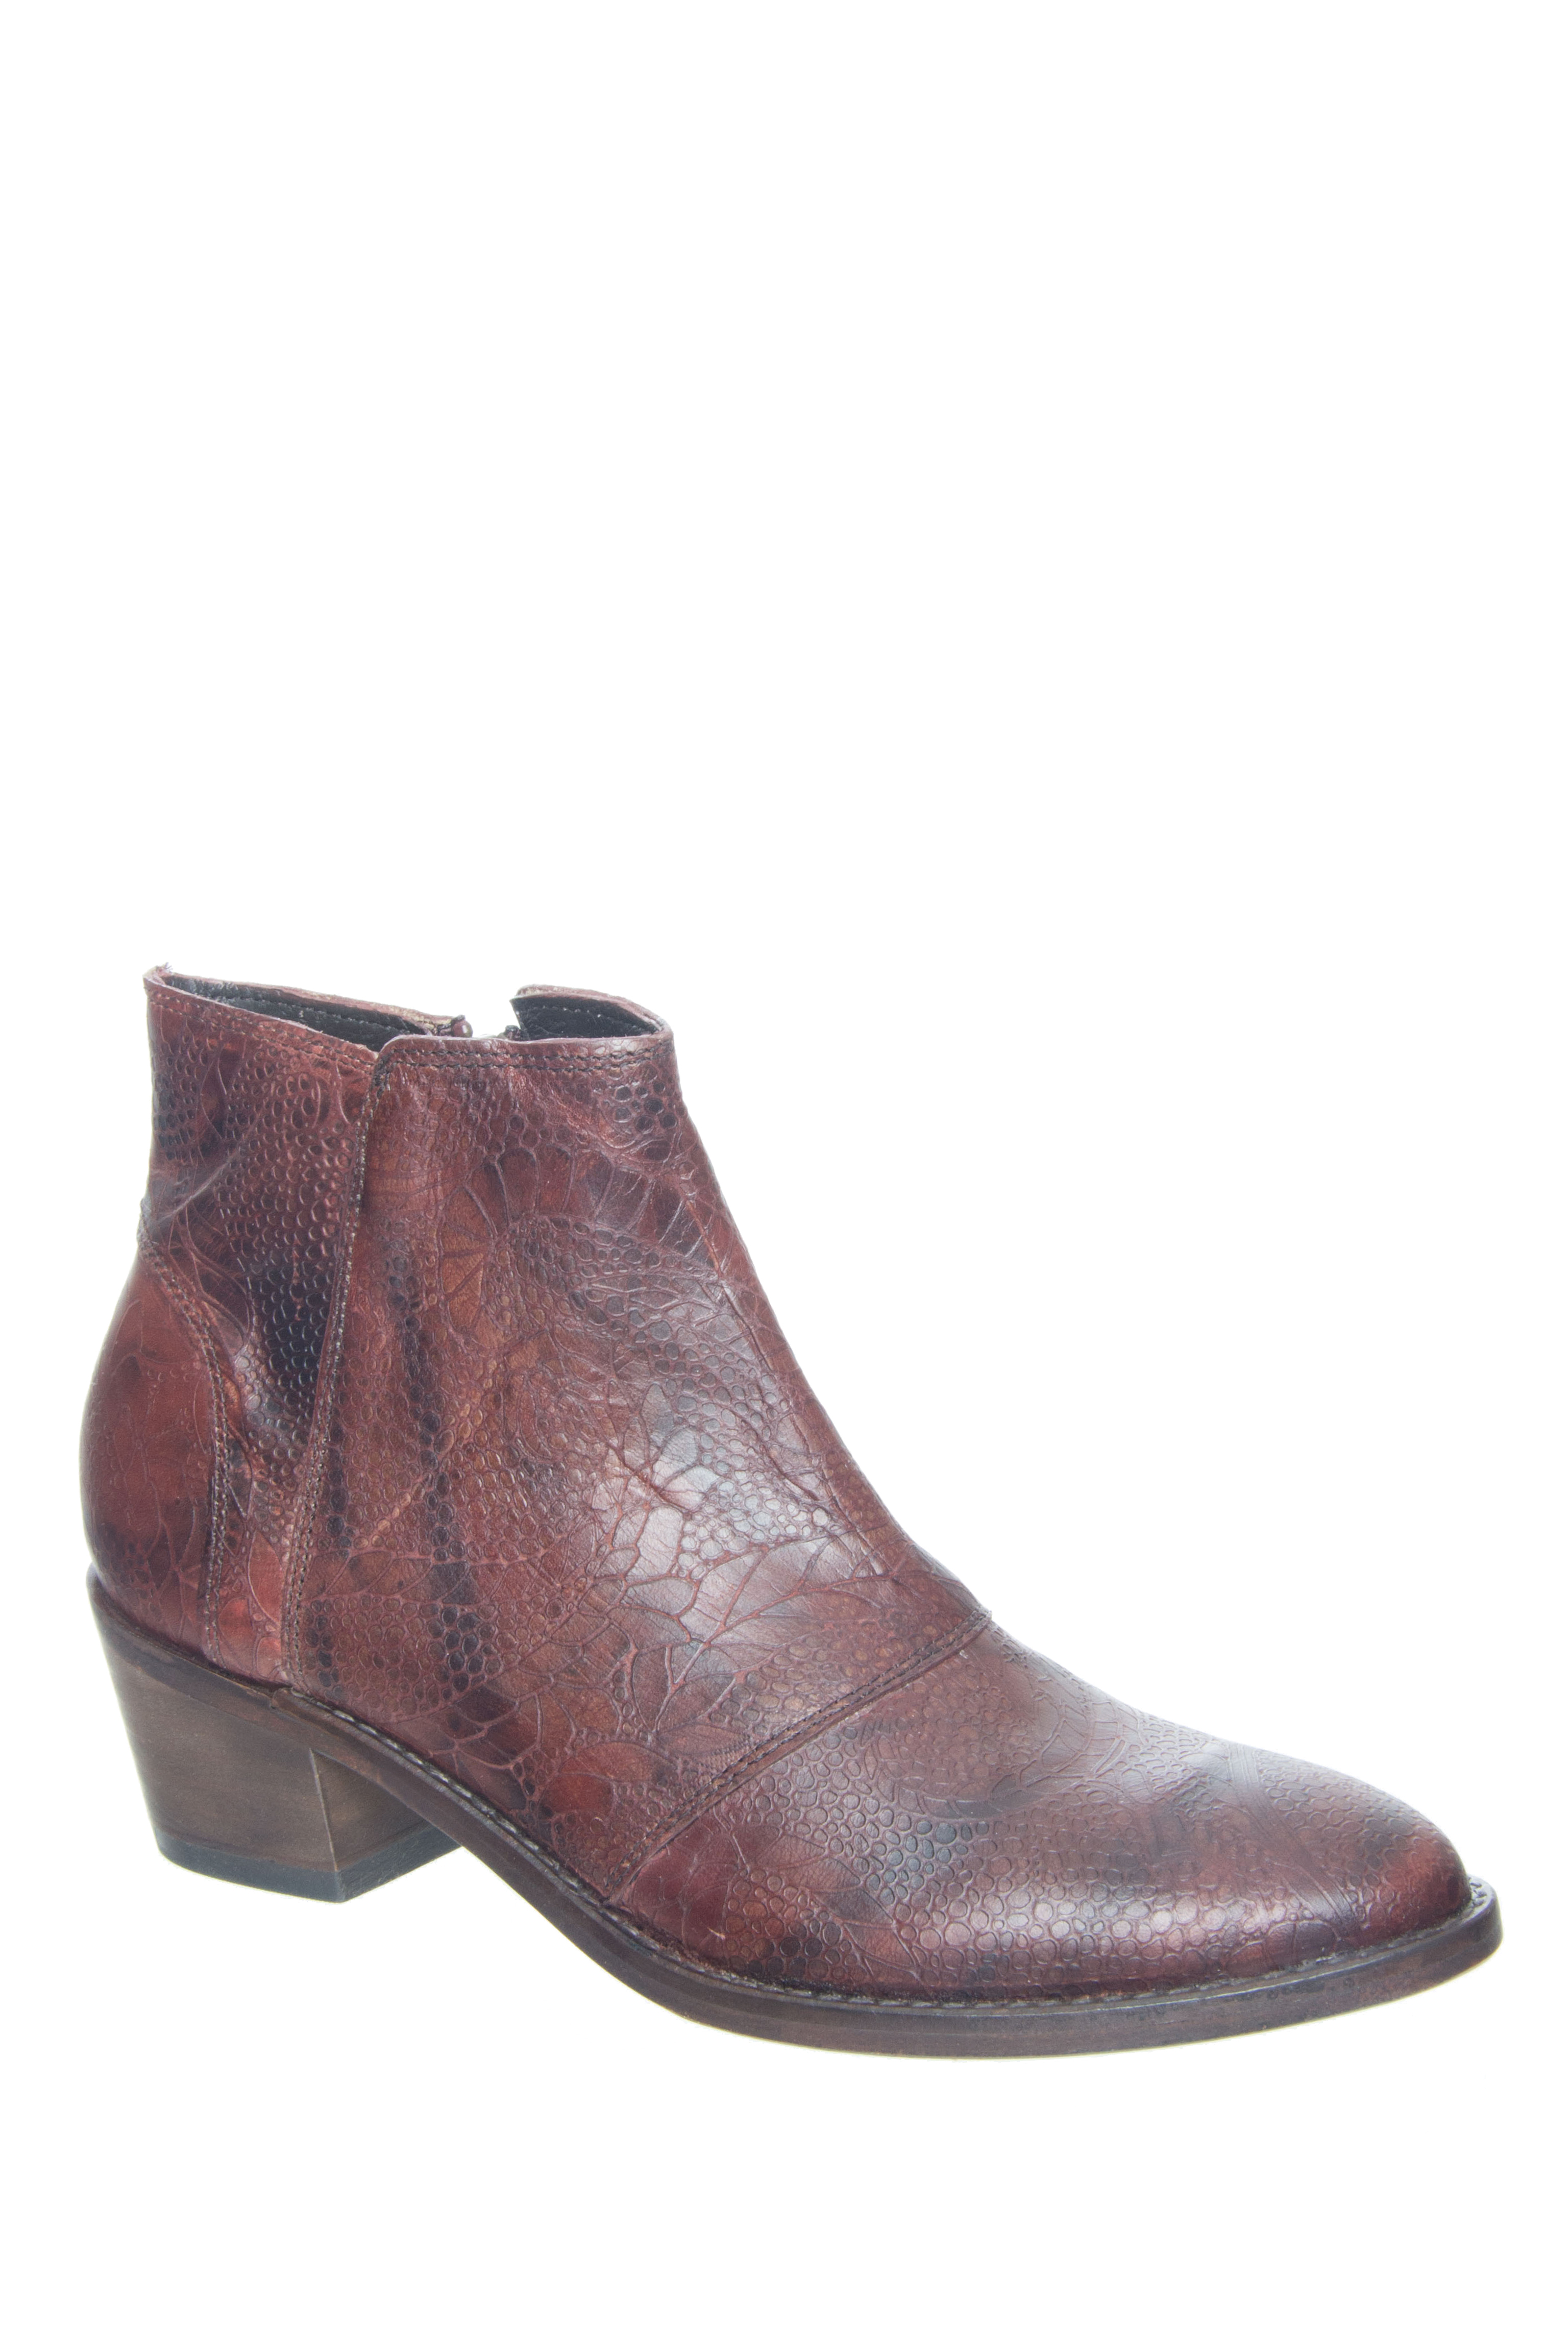 Wolverine 1883 Roxana Low Ankle Boots - Brown